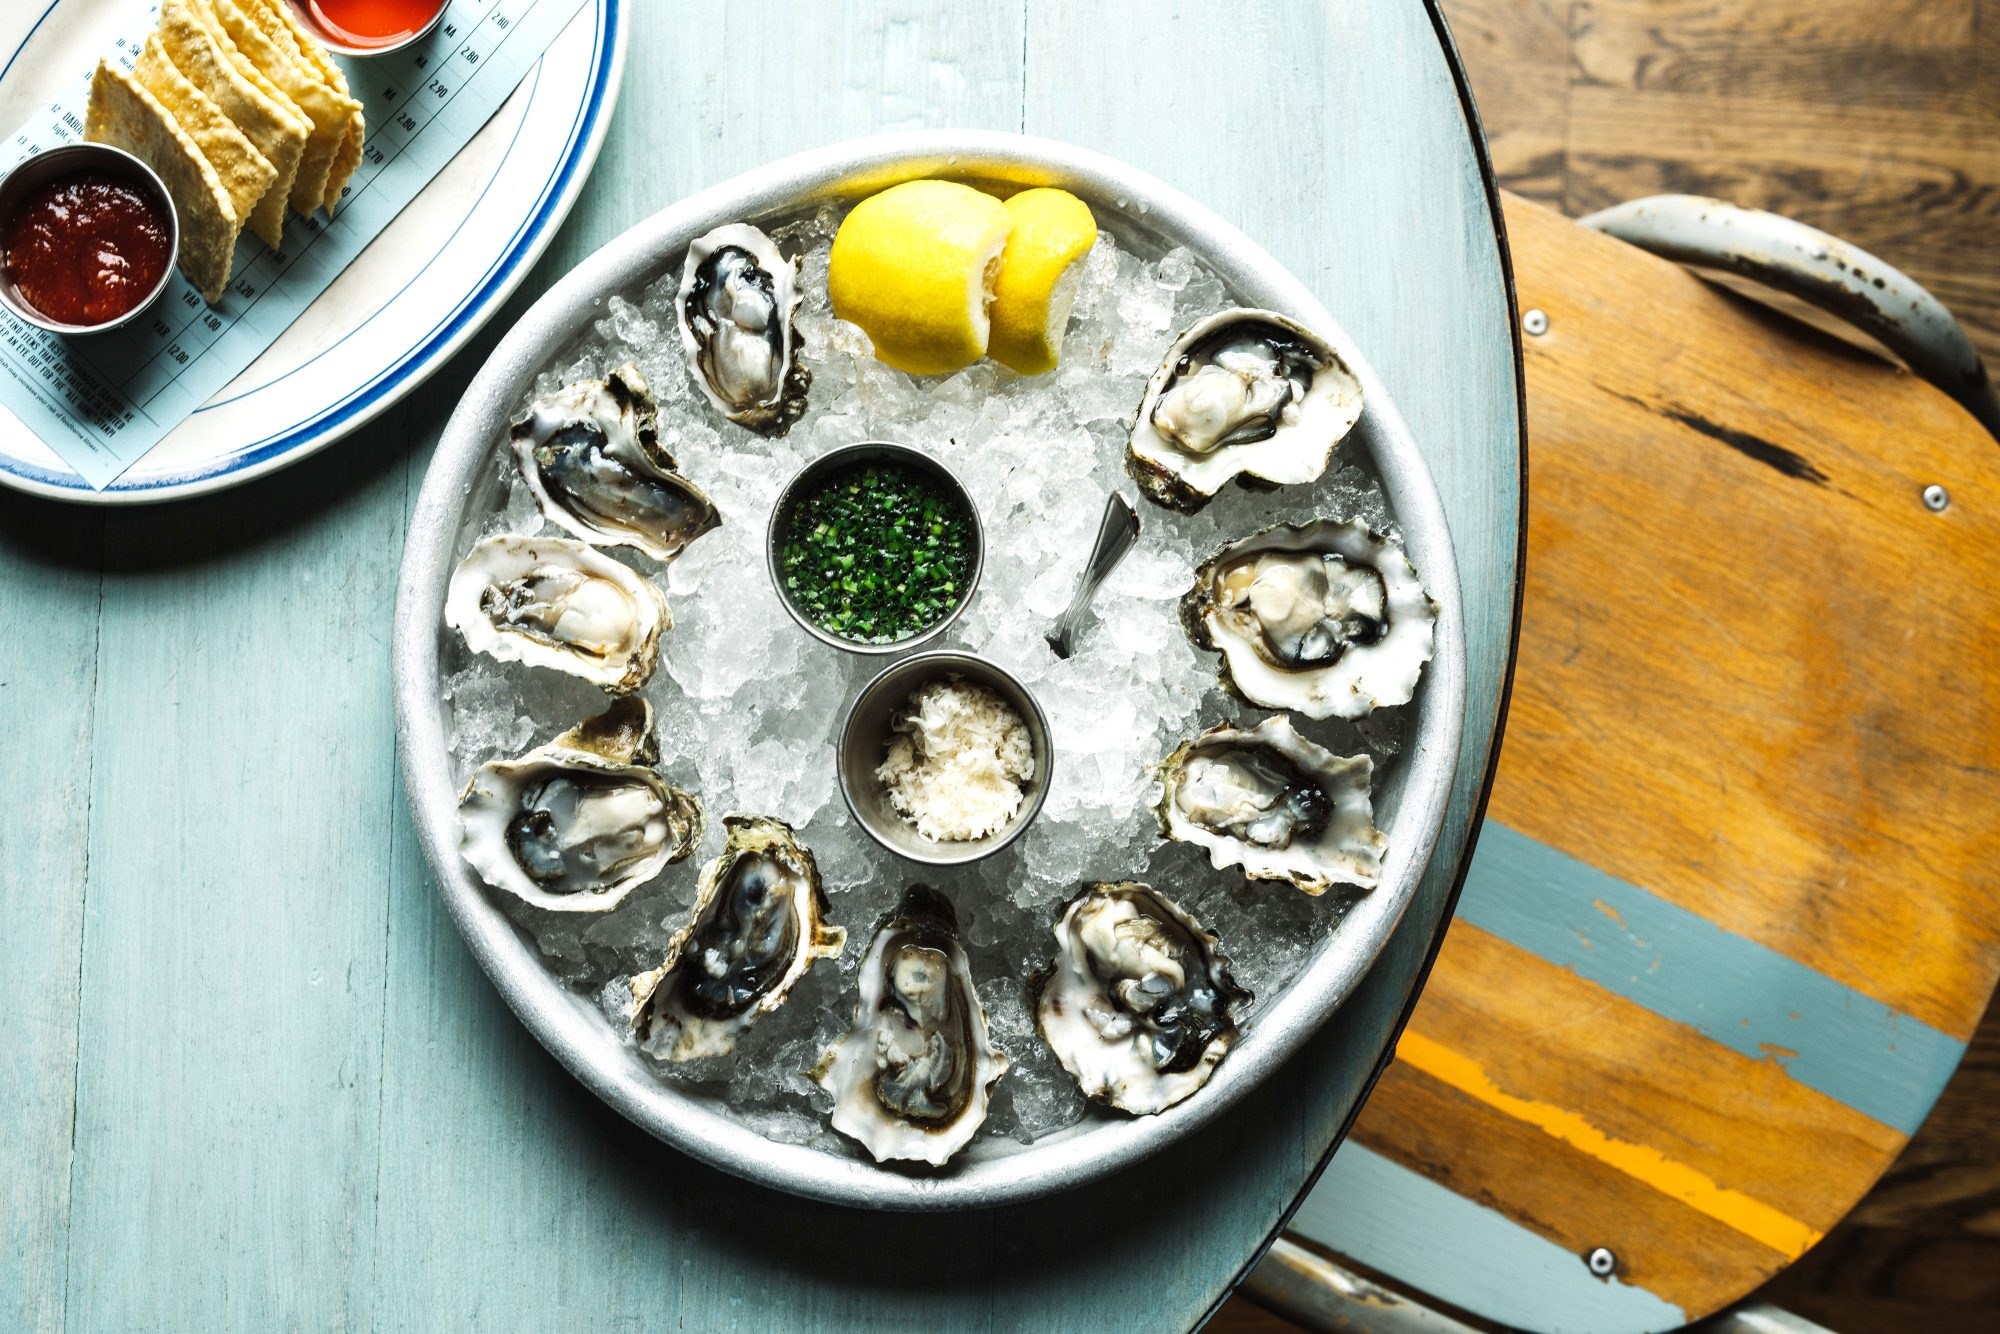 Oysters at The Optimist